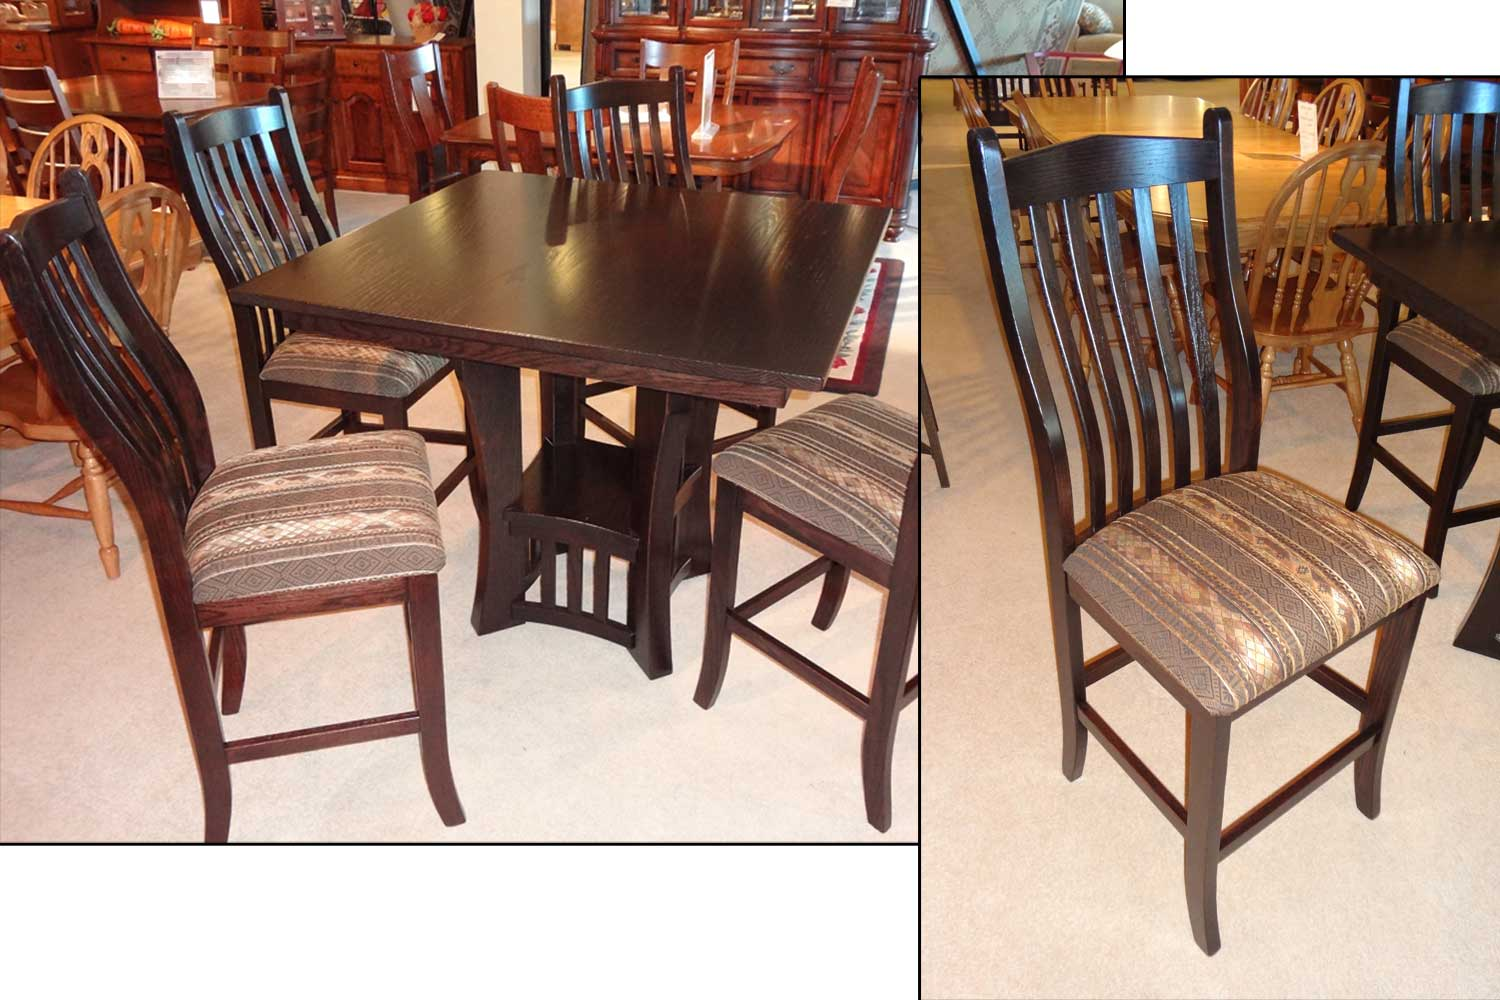 Amish Dining Jasen's Furniture. Amish Dining Furniture